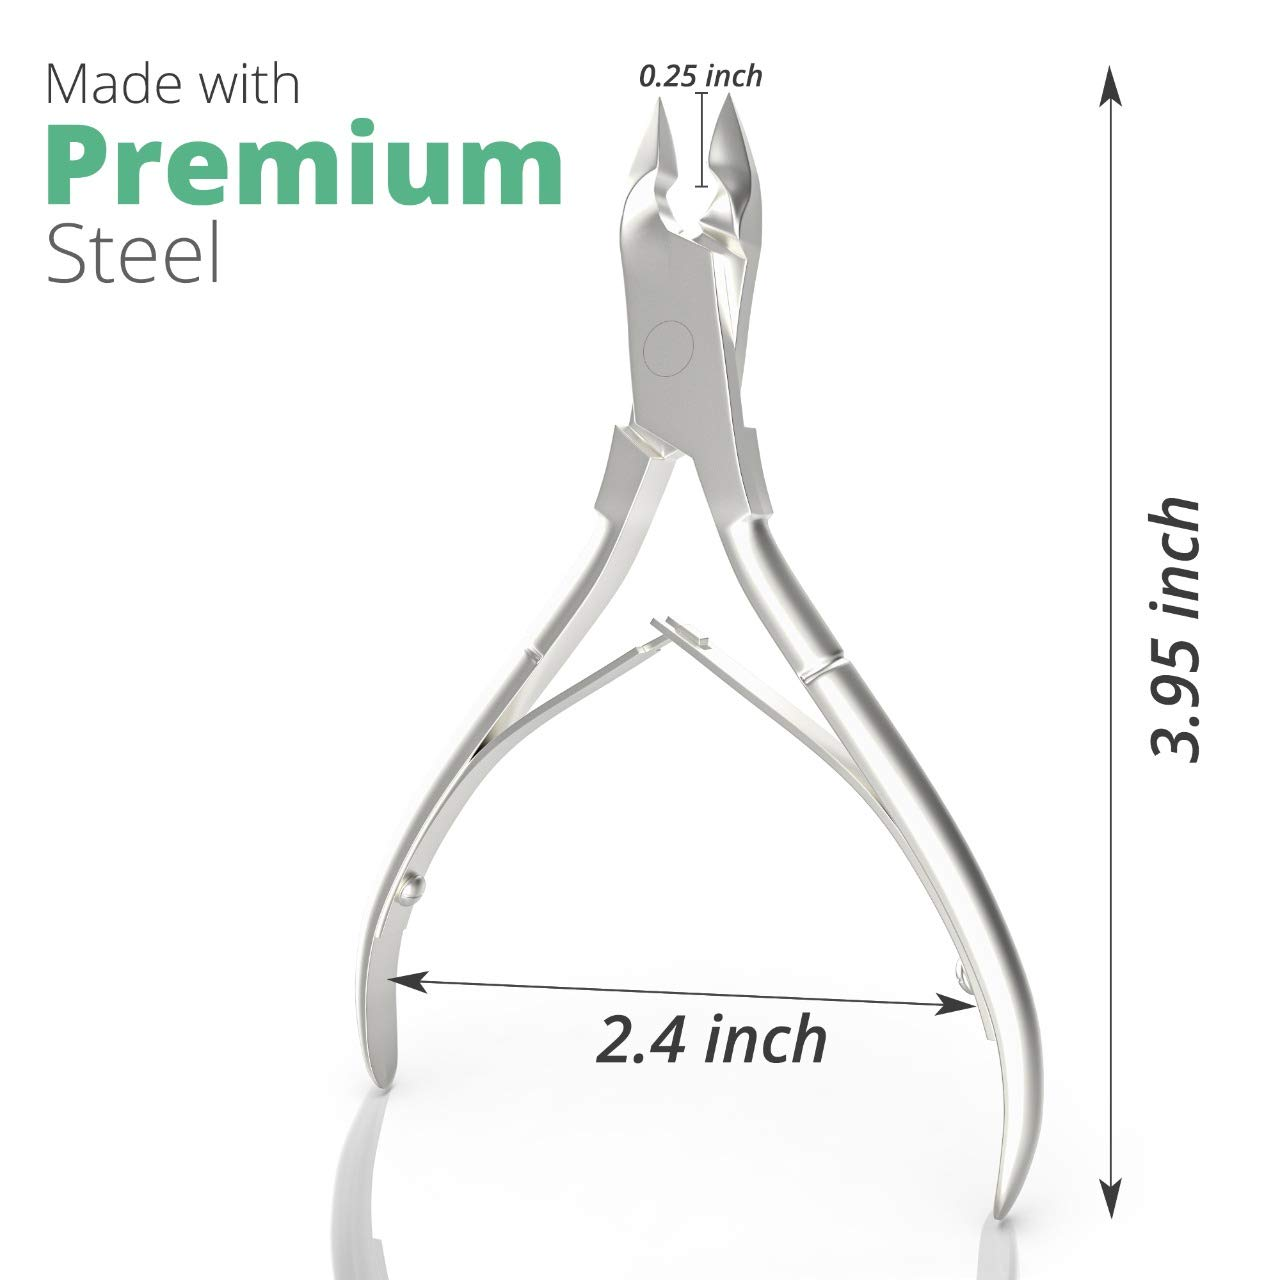 Premium Cuticle Trimmer Stainless Steel Nipper – Sharp Blades with Double Spring – Manicure Pedicure Tool for Home and Salon: Home Improvement